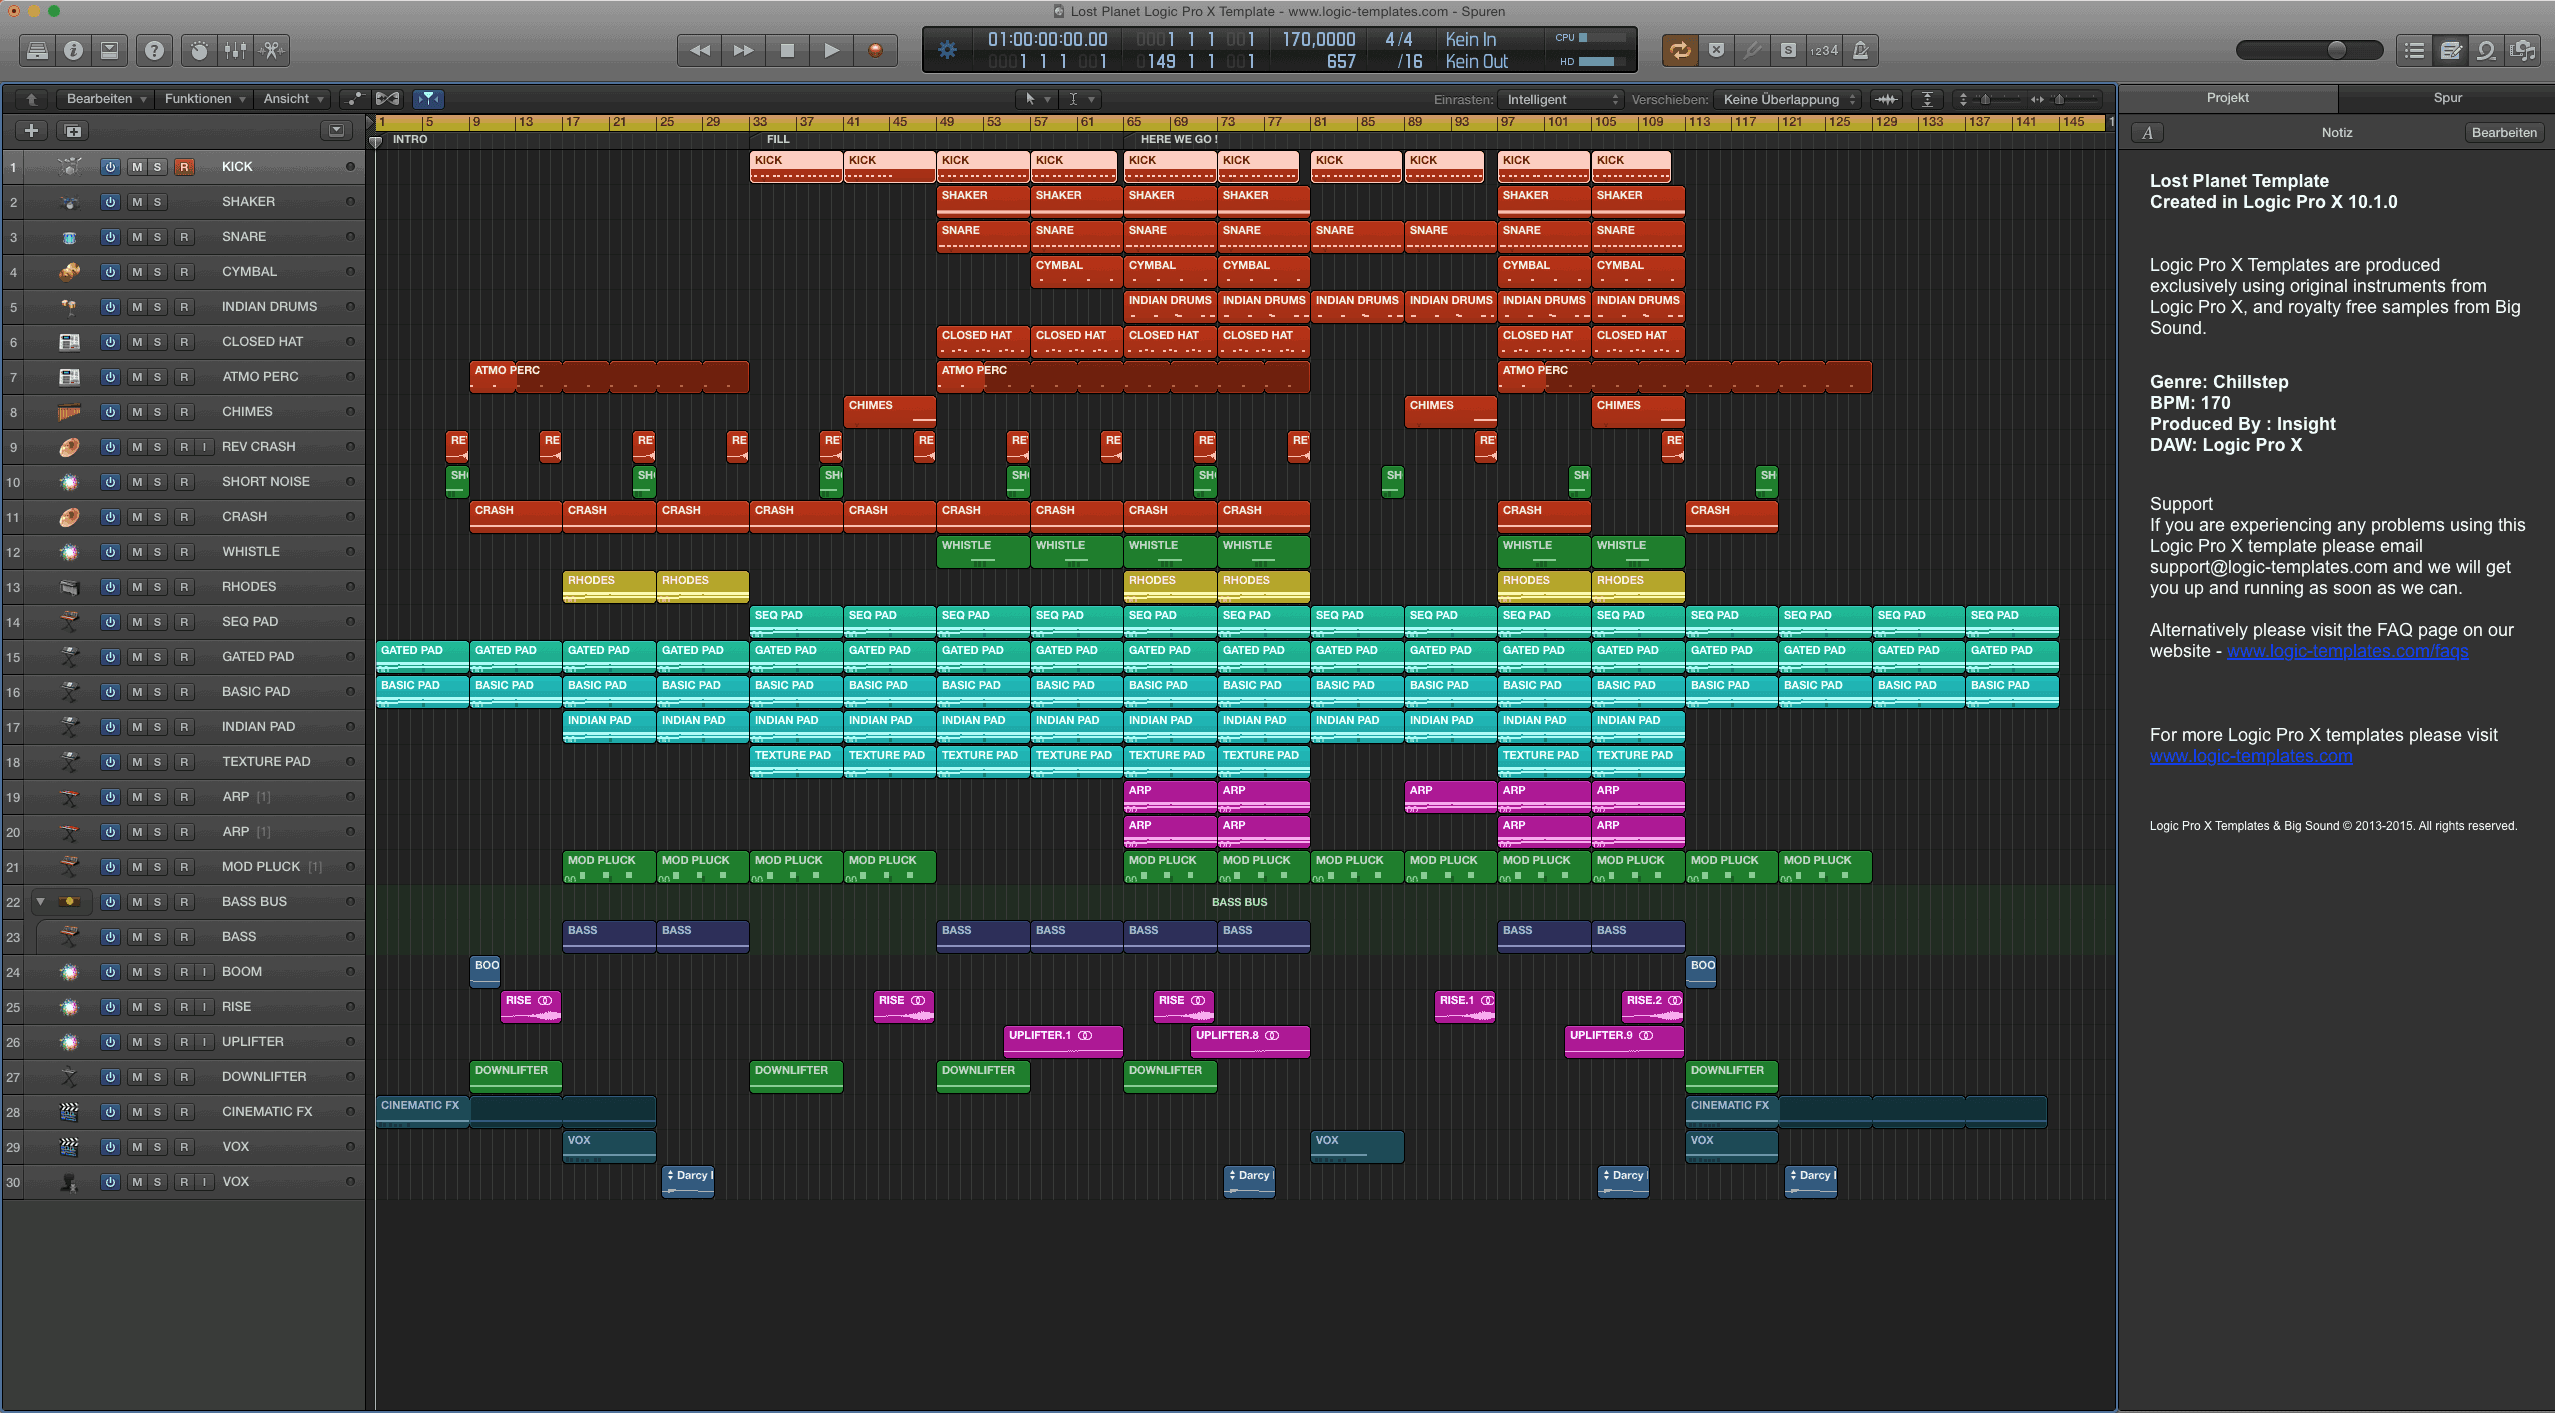 Lost Planet Logic Pro X Template